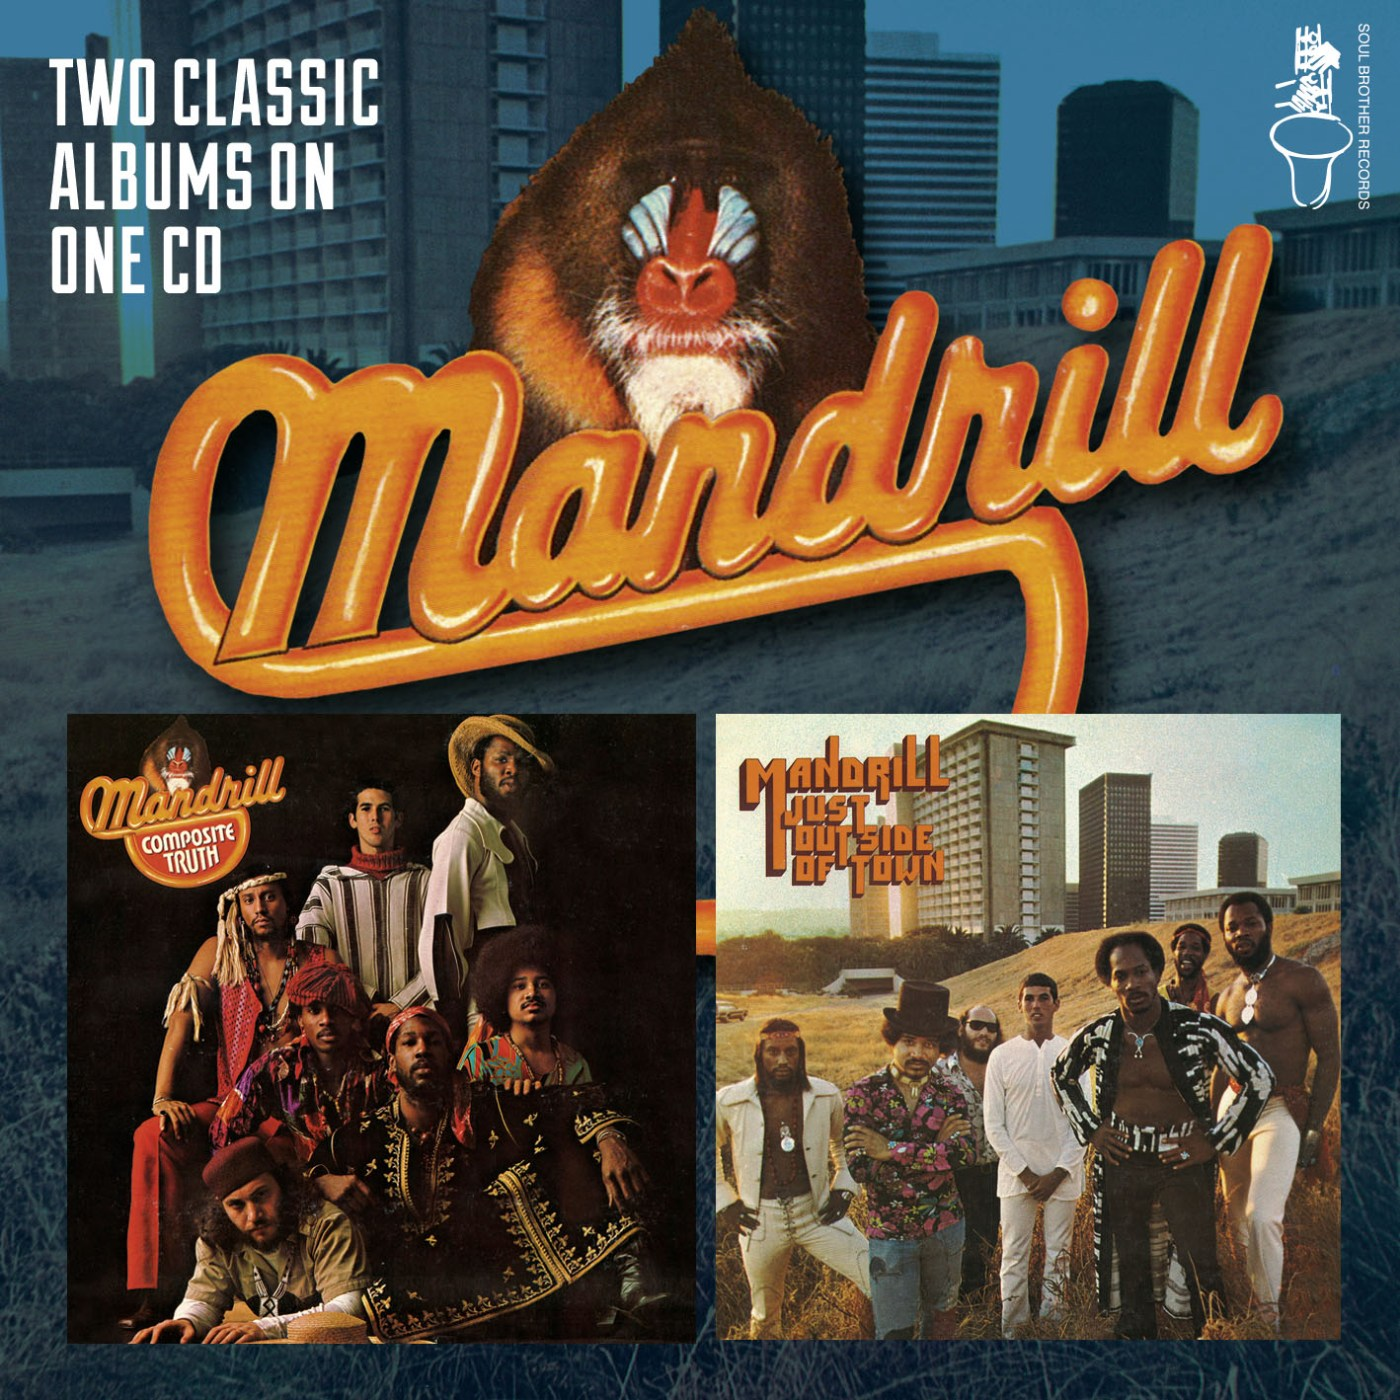 Mandrill/COMPOSITE TRUTH & JUST OUT CD